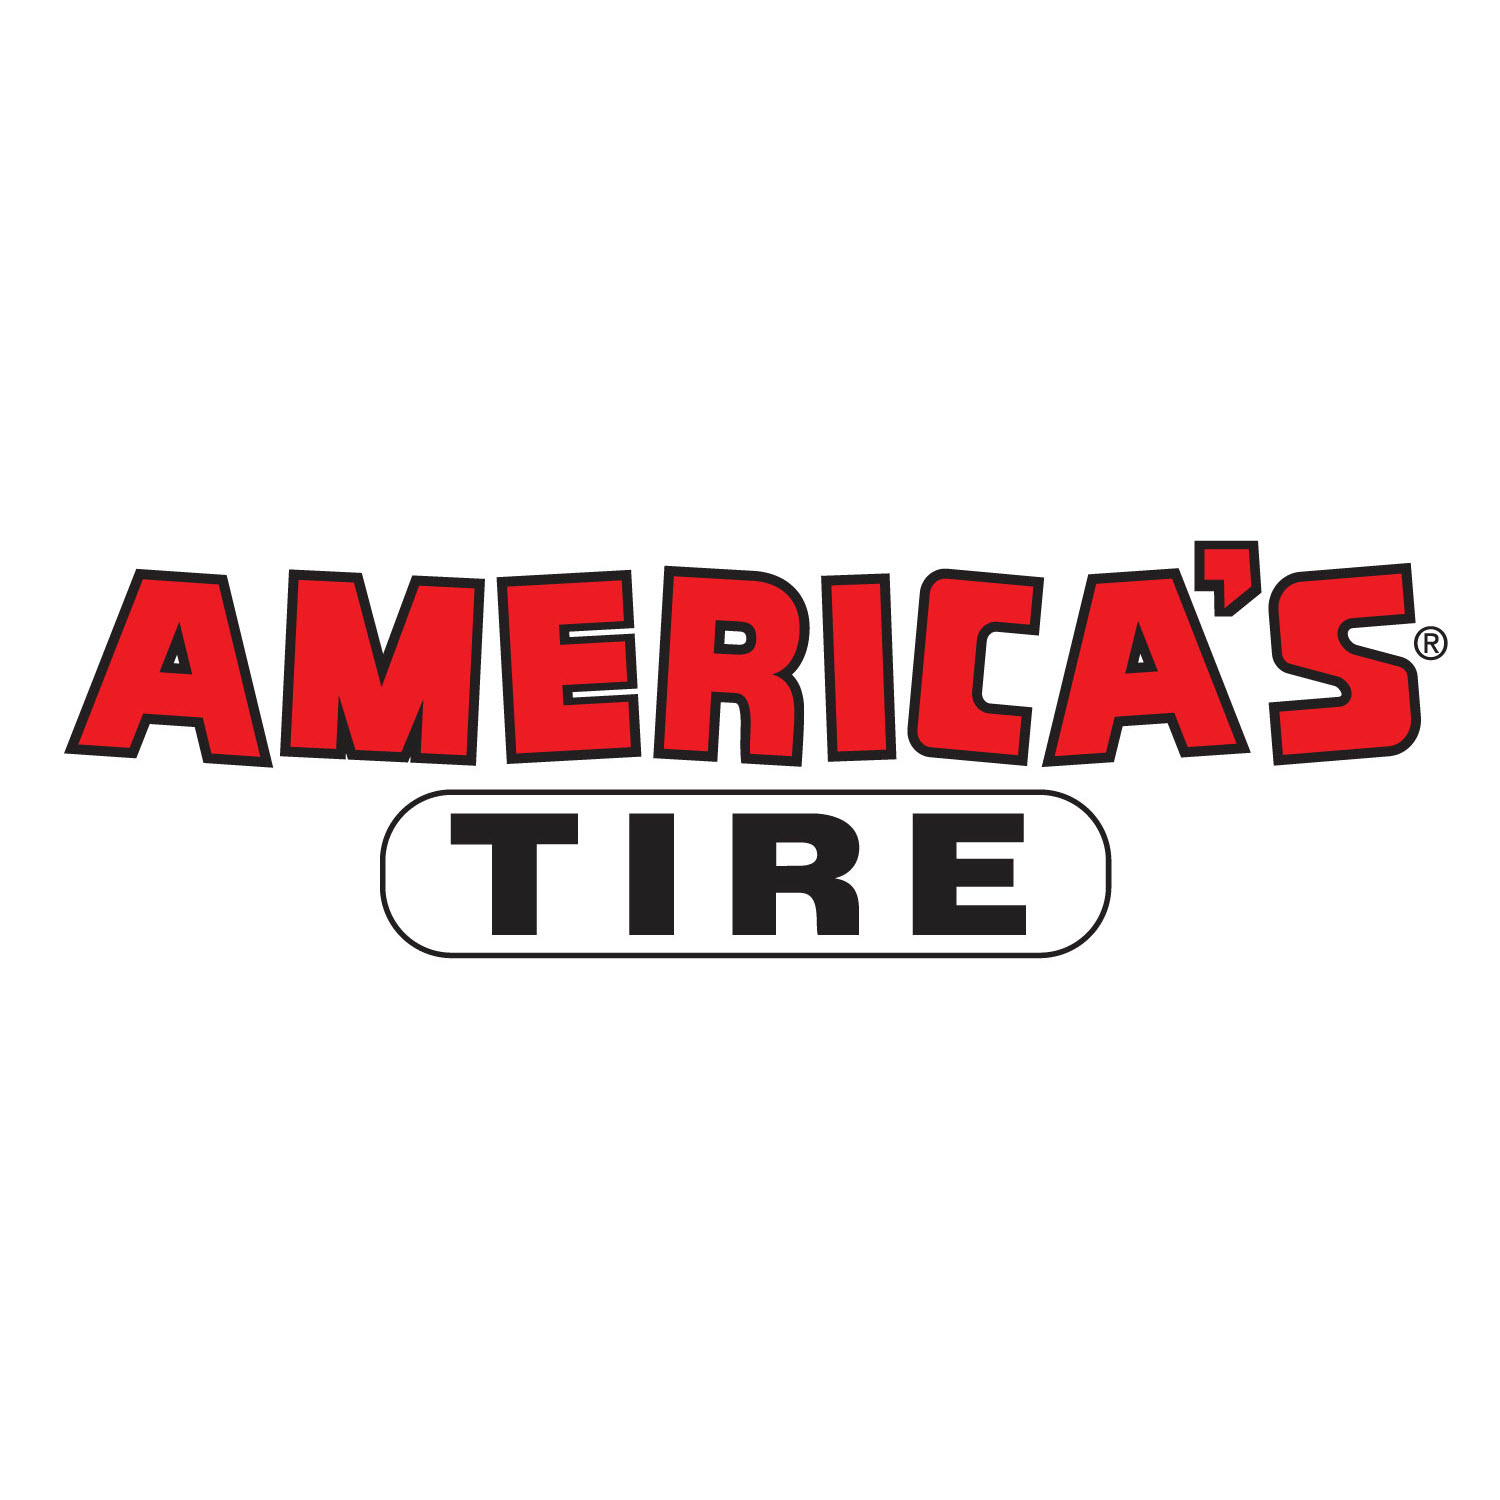 Americas Tire - Clackamas, OR 97015 - (503)652-4353 | ShowMeLocal.com